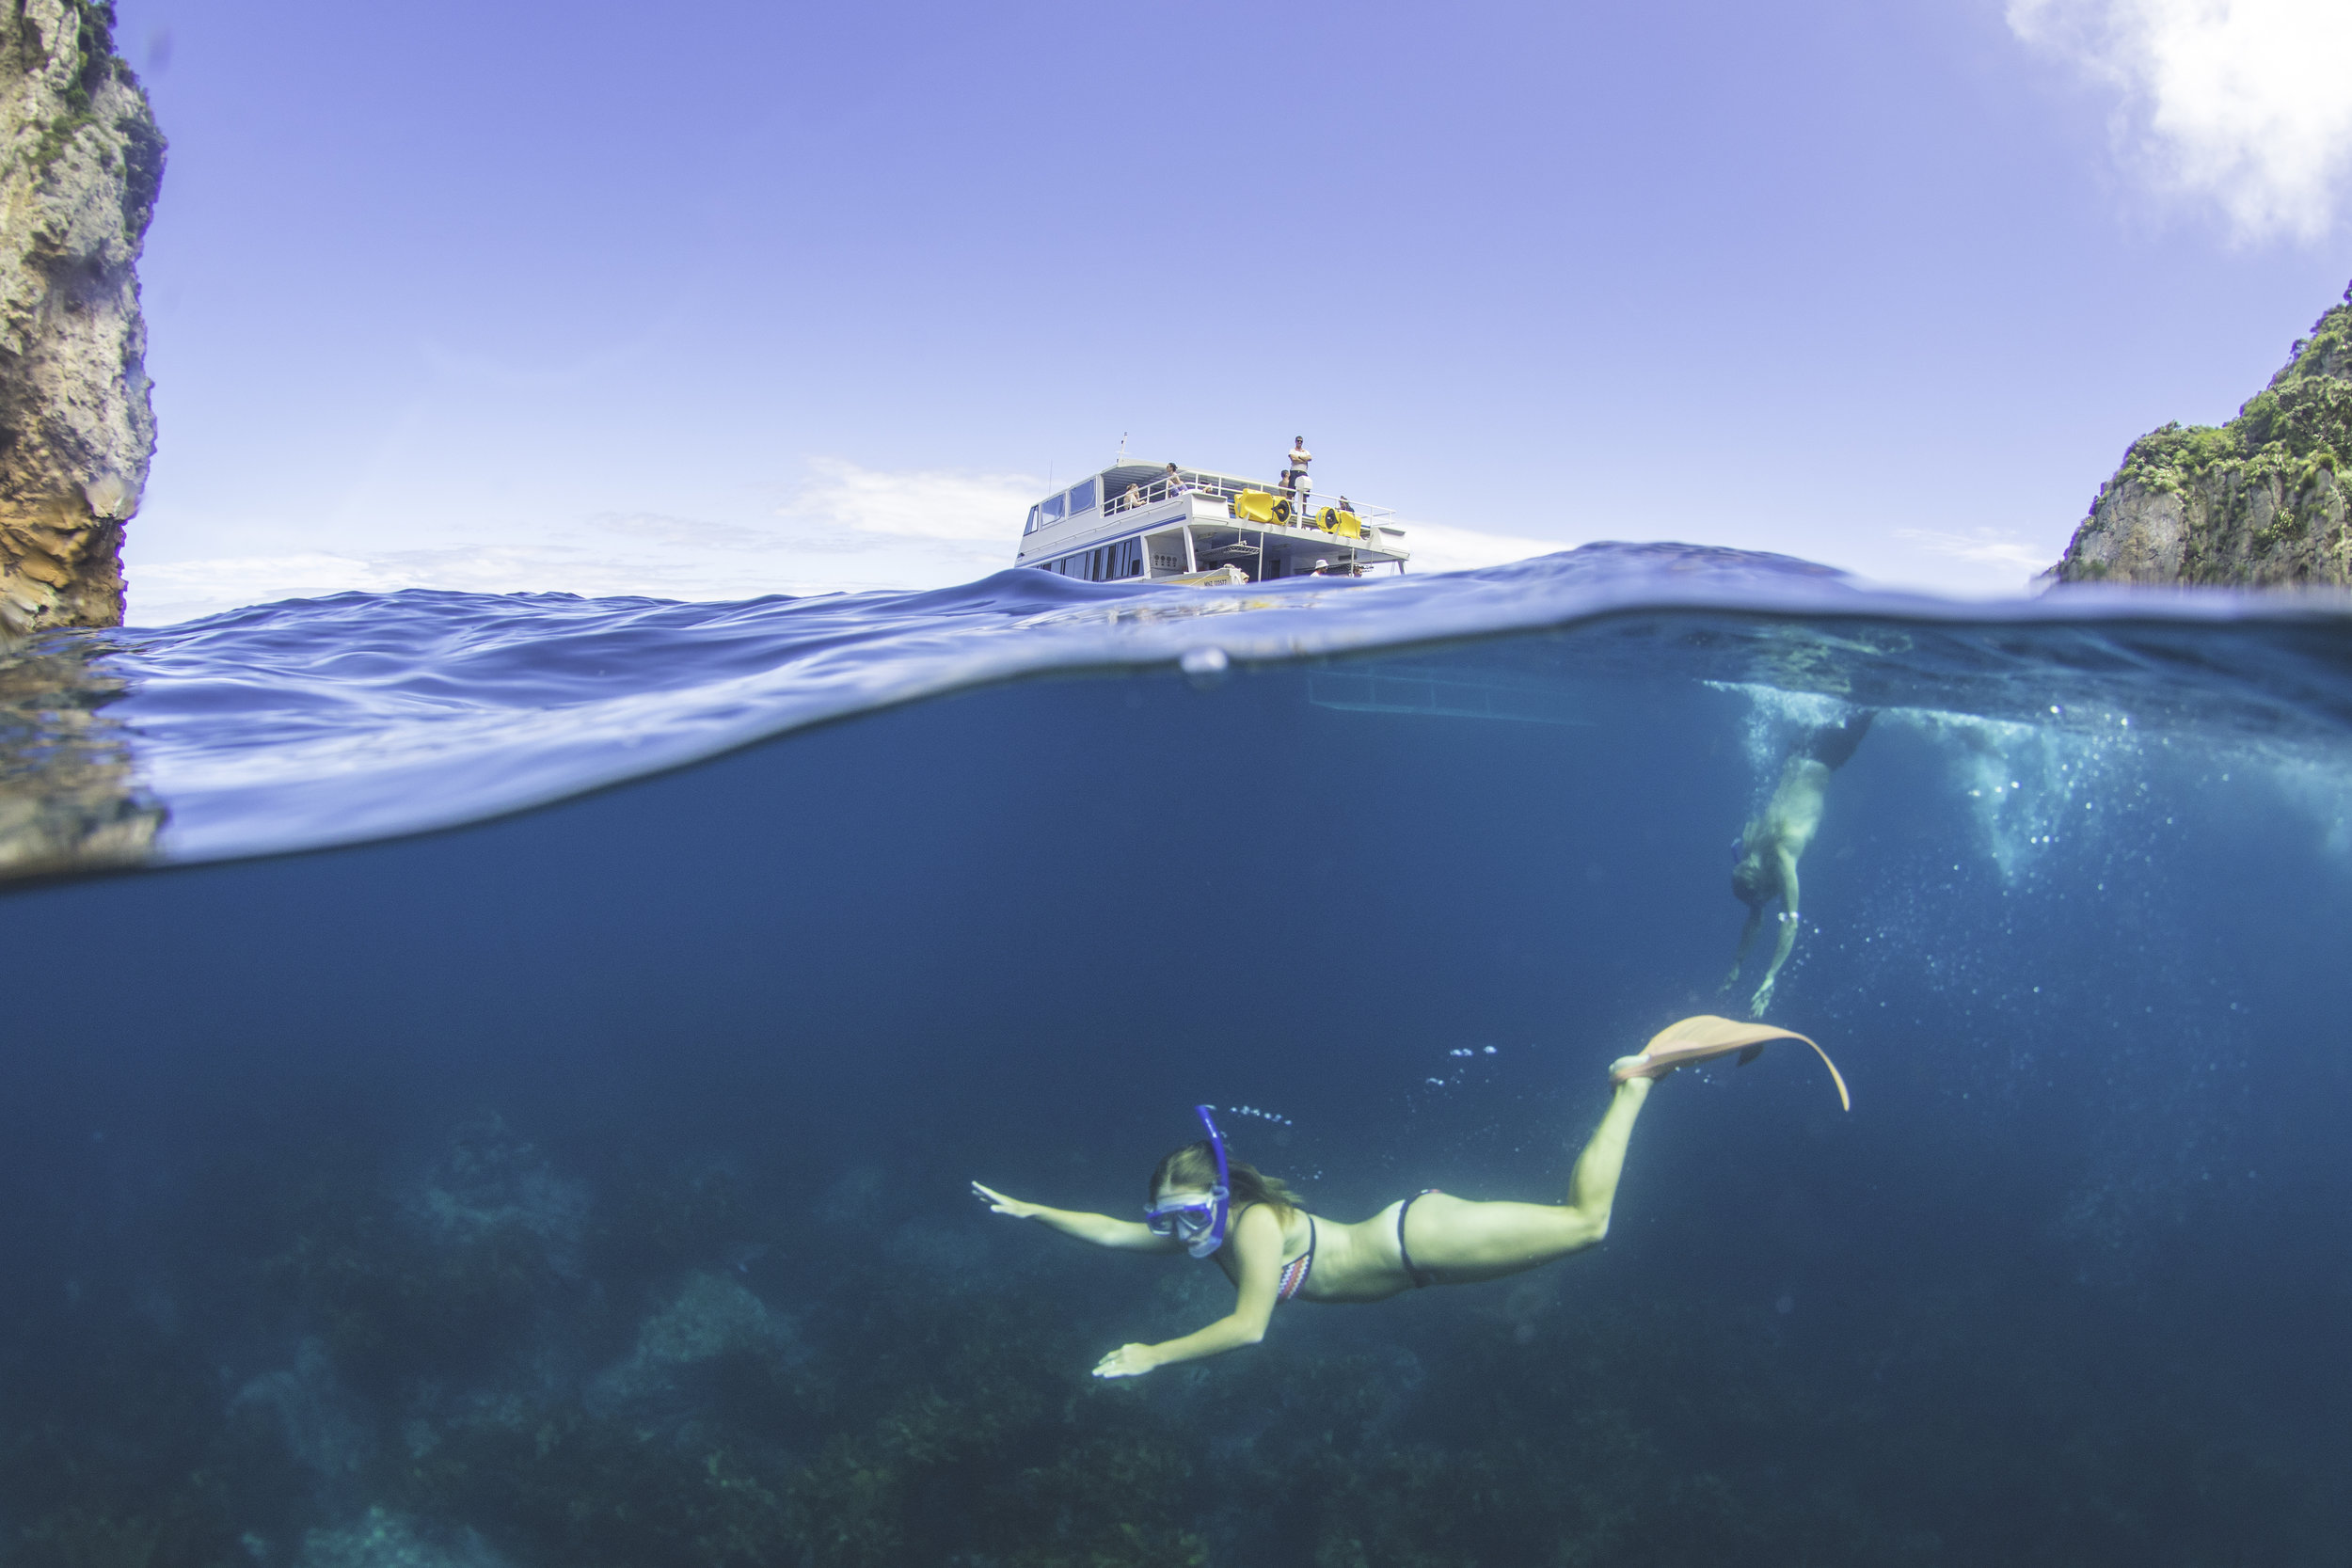 Non-diving partners welcome - the clear waters offer incredible snorkelling, and the SUP's are great fun on board.